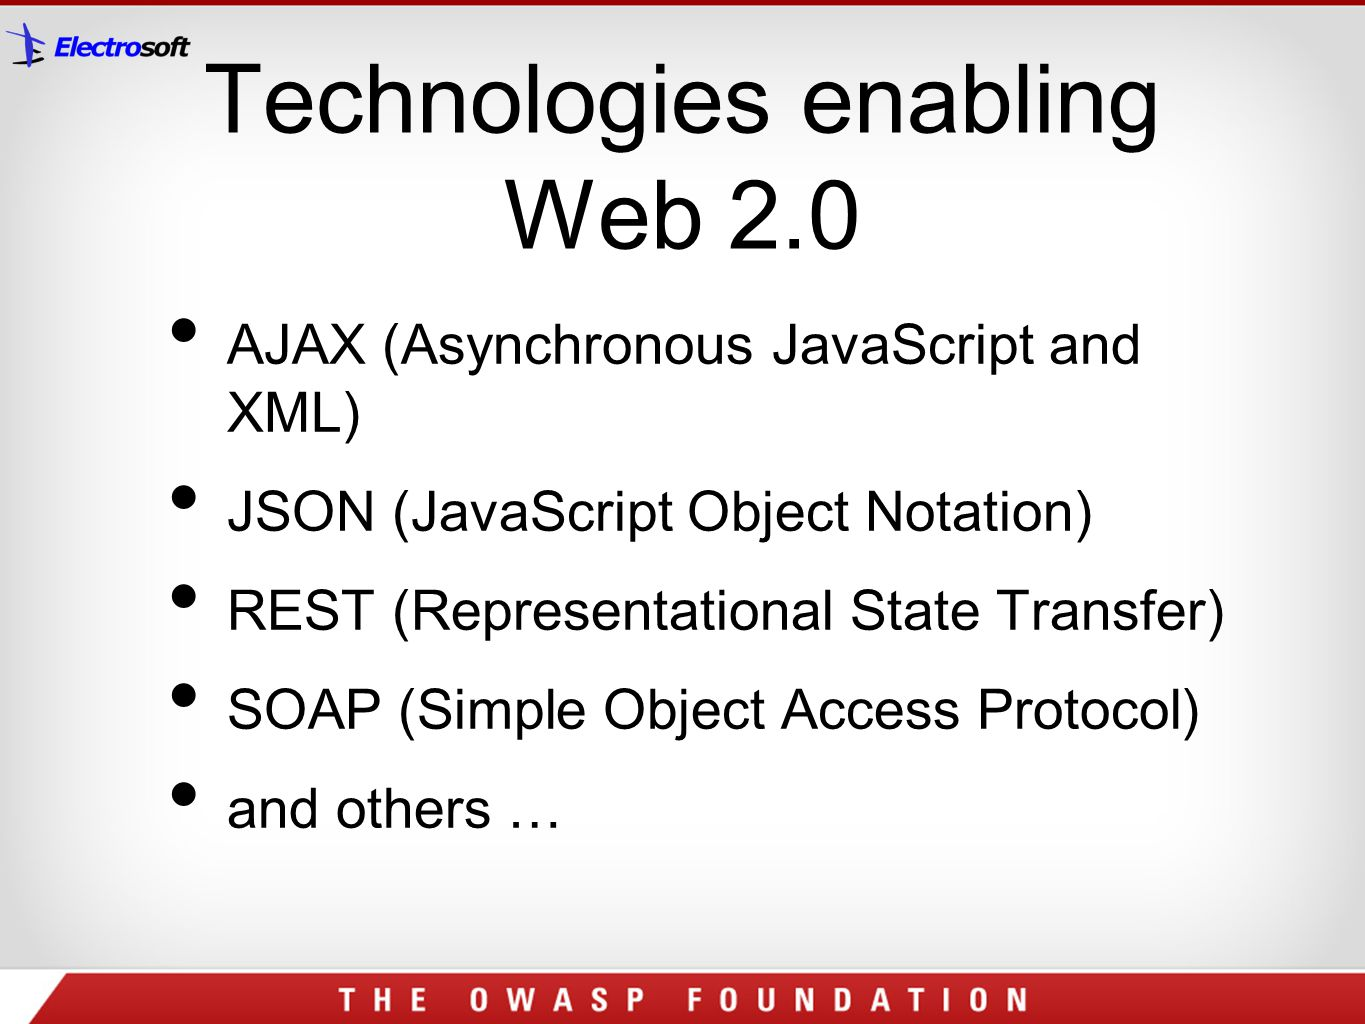 Technologies enabling Web 2.0